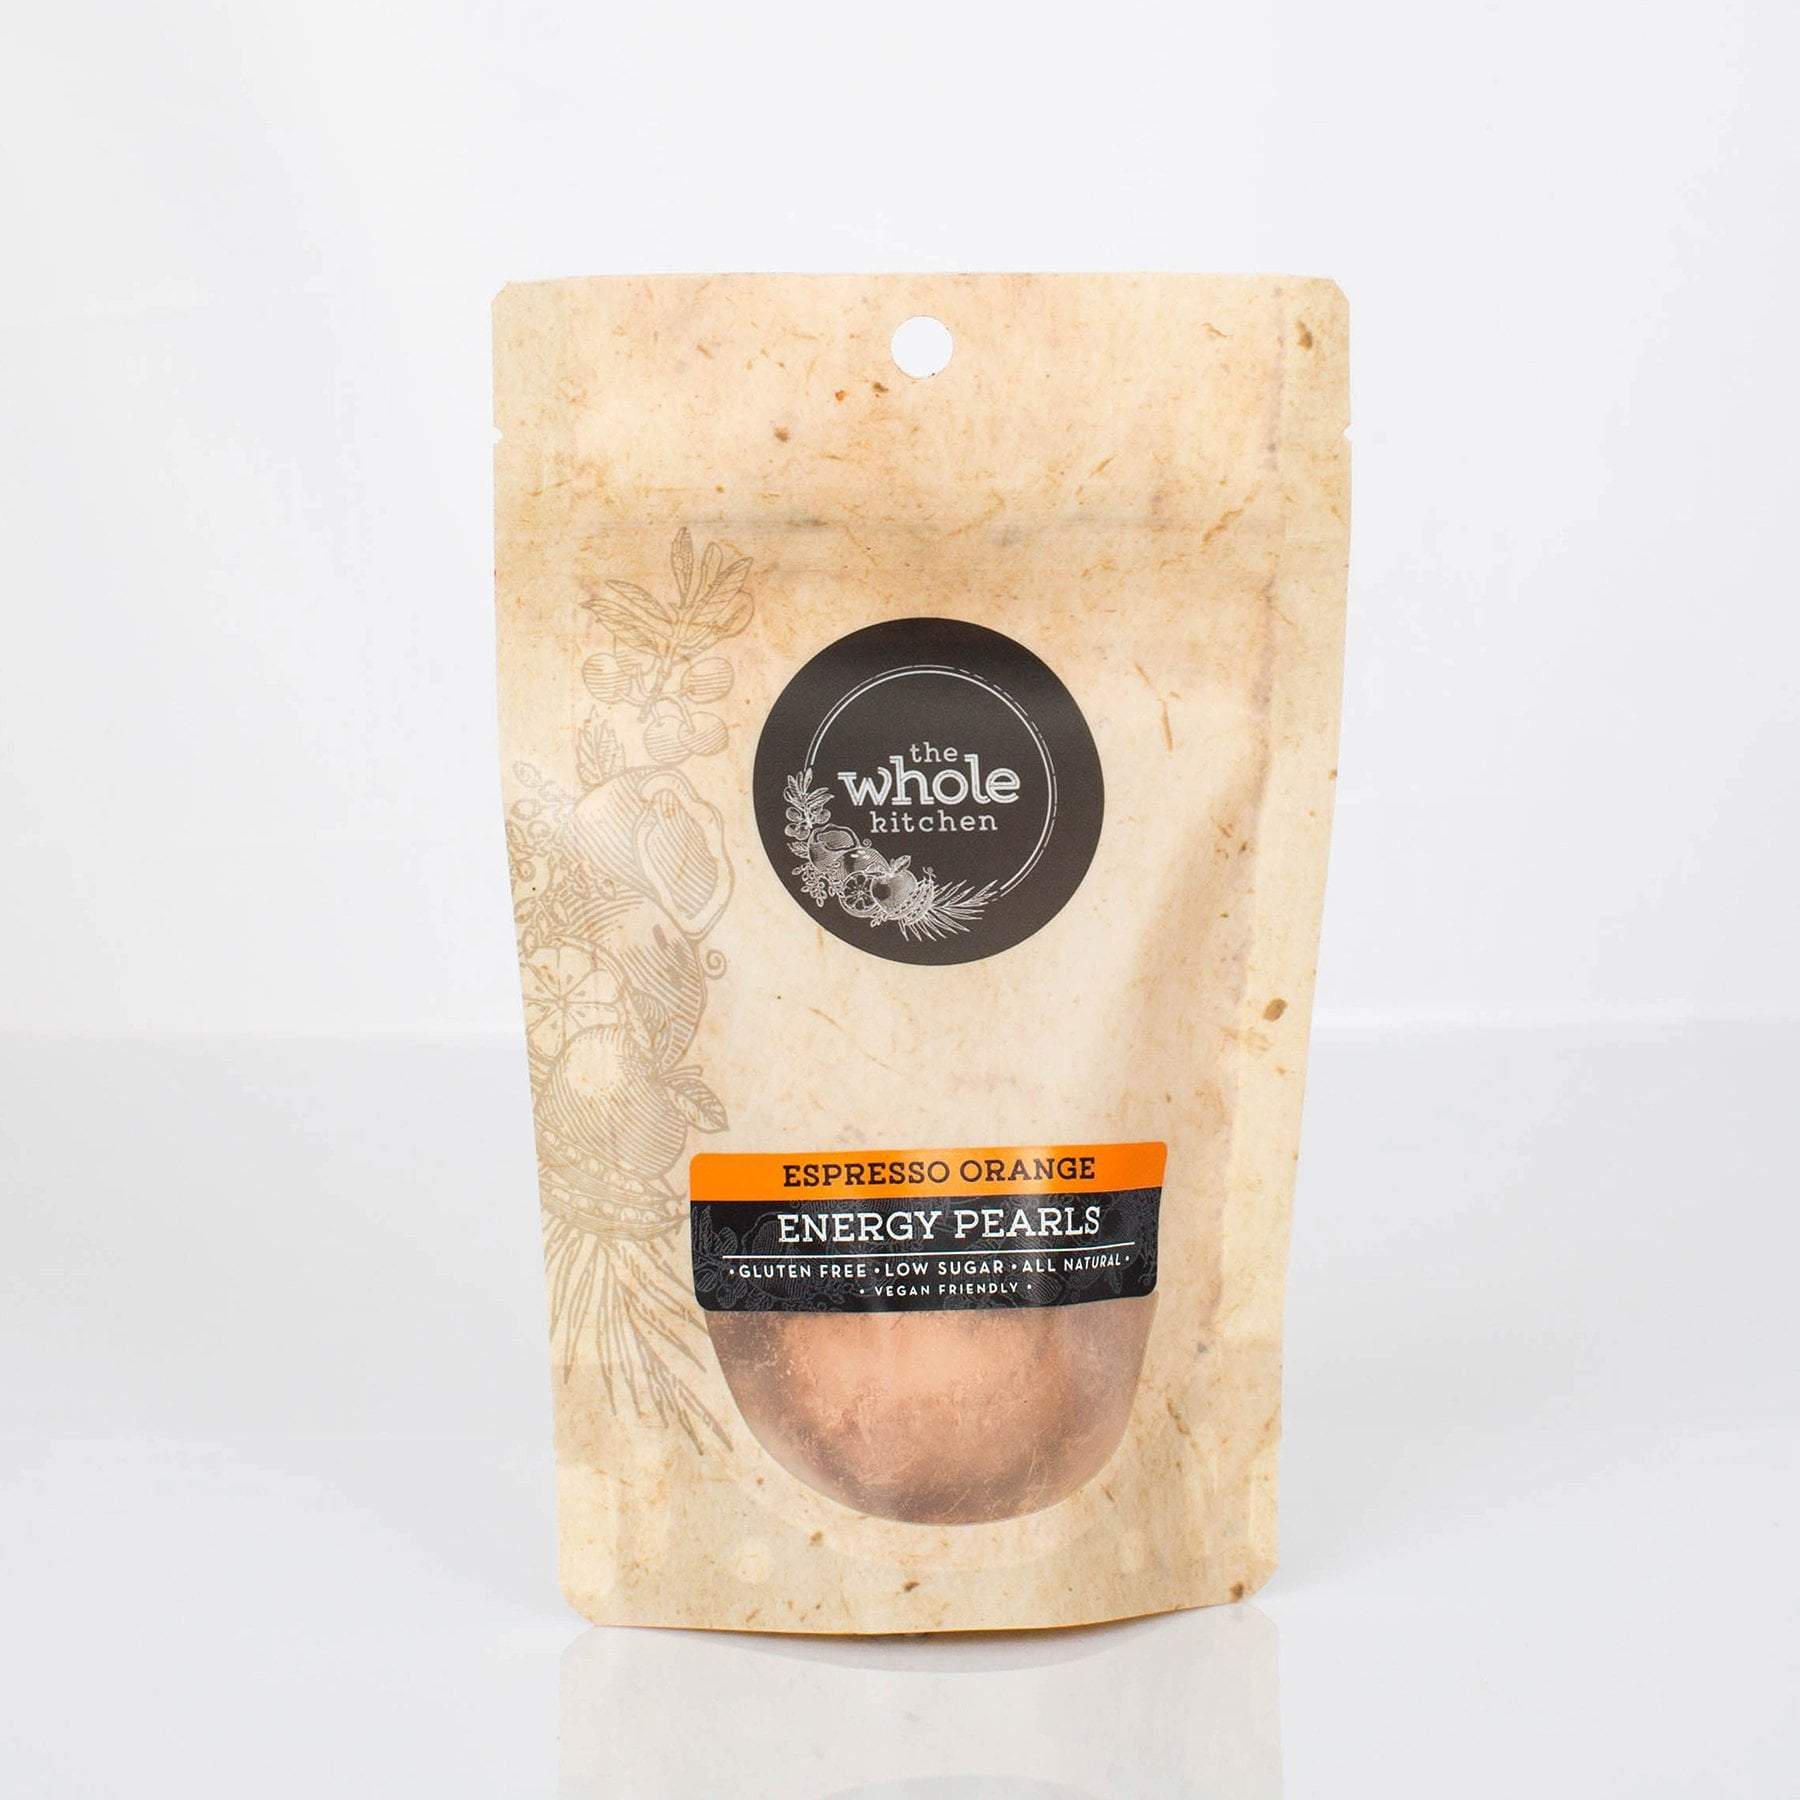 The Whole Kitchen Espresso Orange Energy Pearls (2 pack) To Go > Ready to Eat